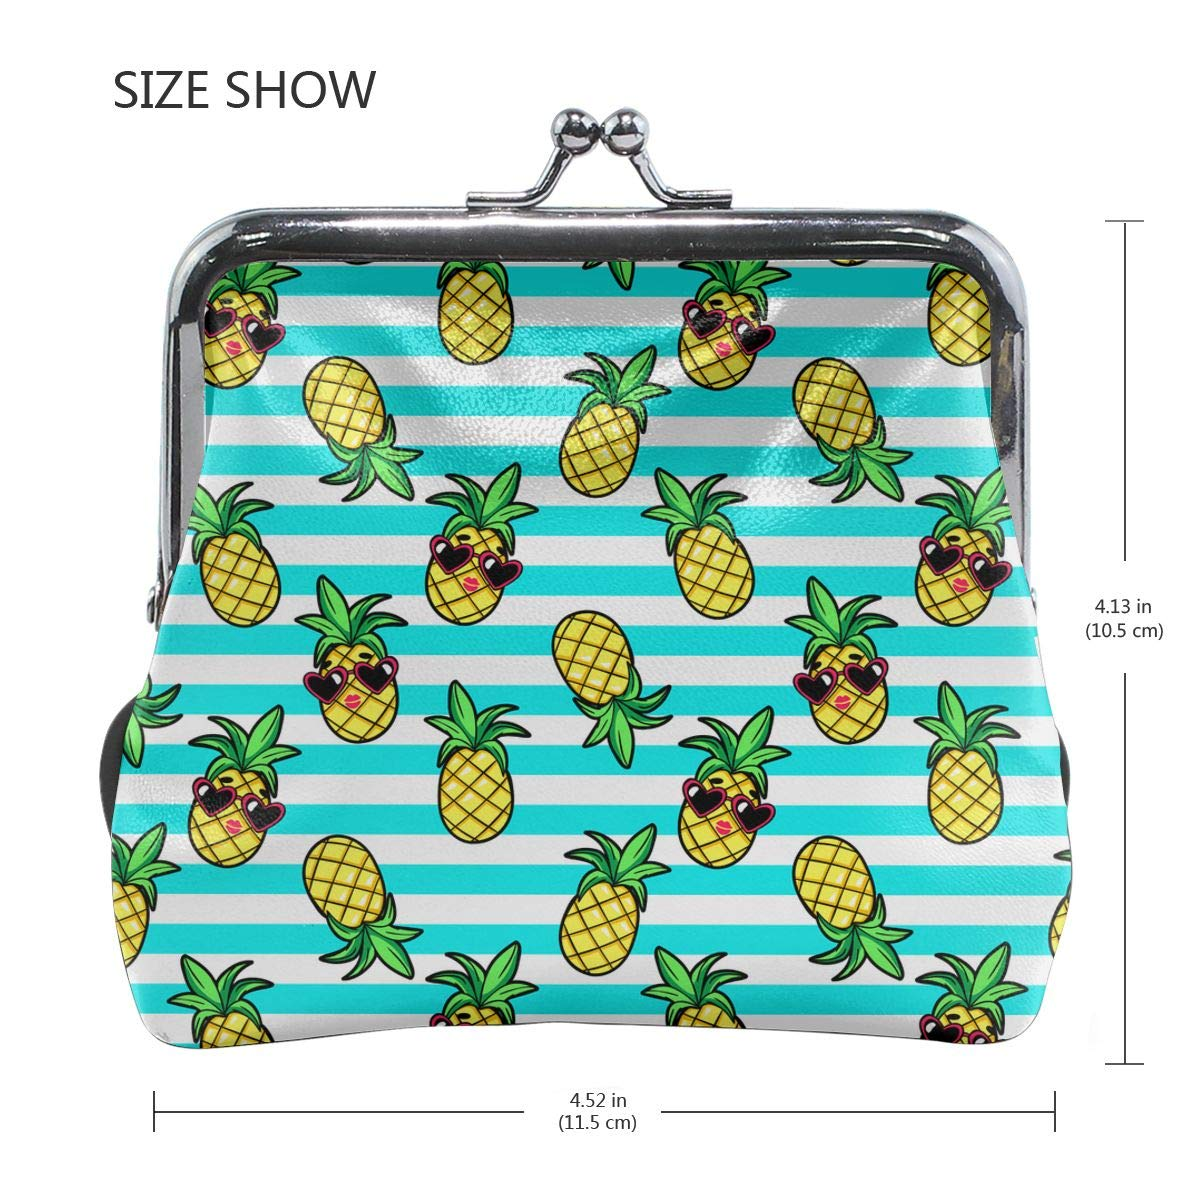 Pineapples And Sunglasses Coin Purses Vintage Pouch Kiss-lock Change Purse Wallets